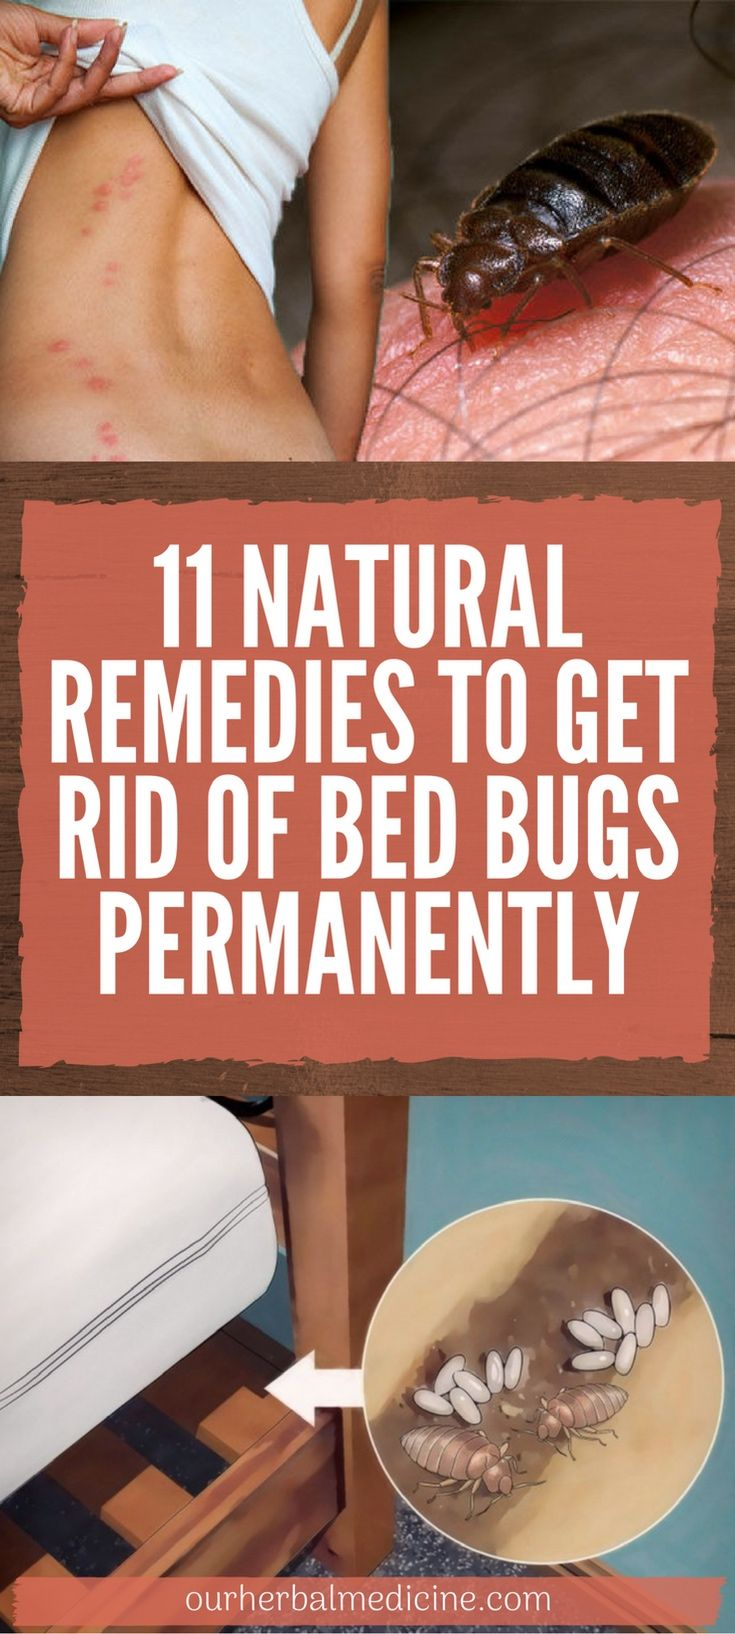 11 Natural Remedies To Get Rid Of Bed Bugs Permanently Rid Of Bed Bugs Bed Bugs Natural Remedies